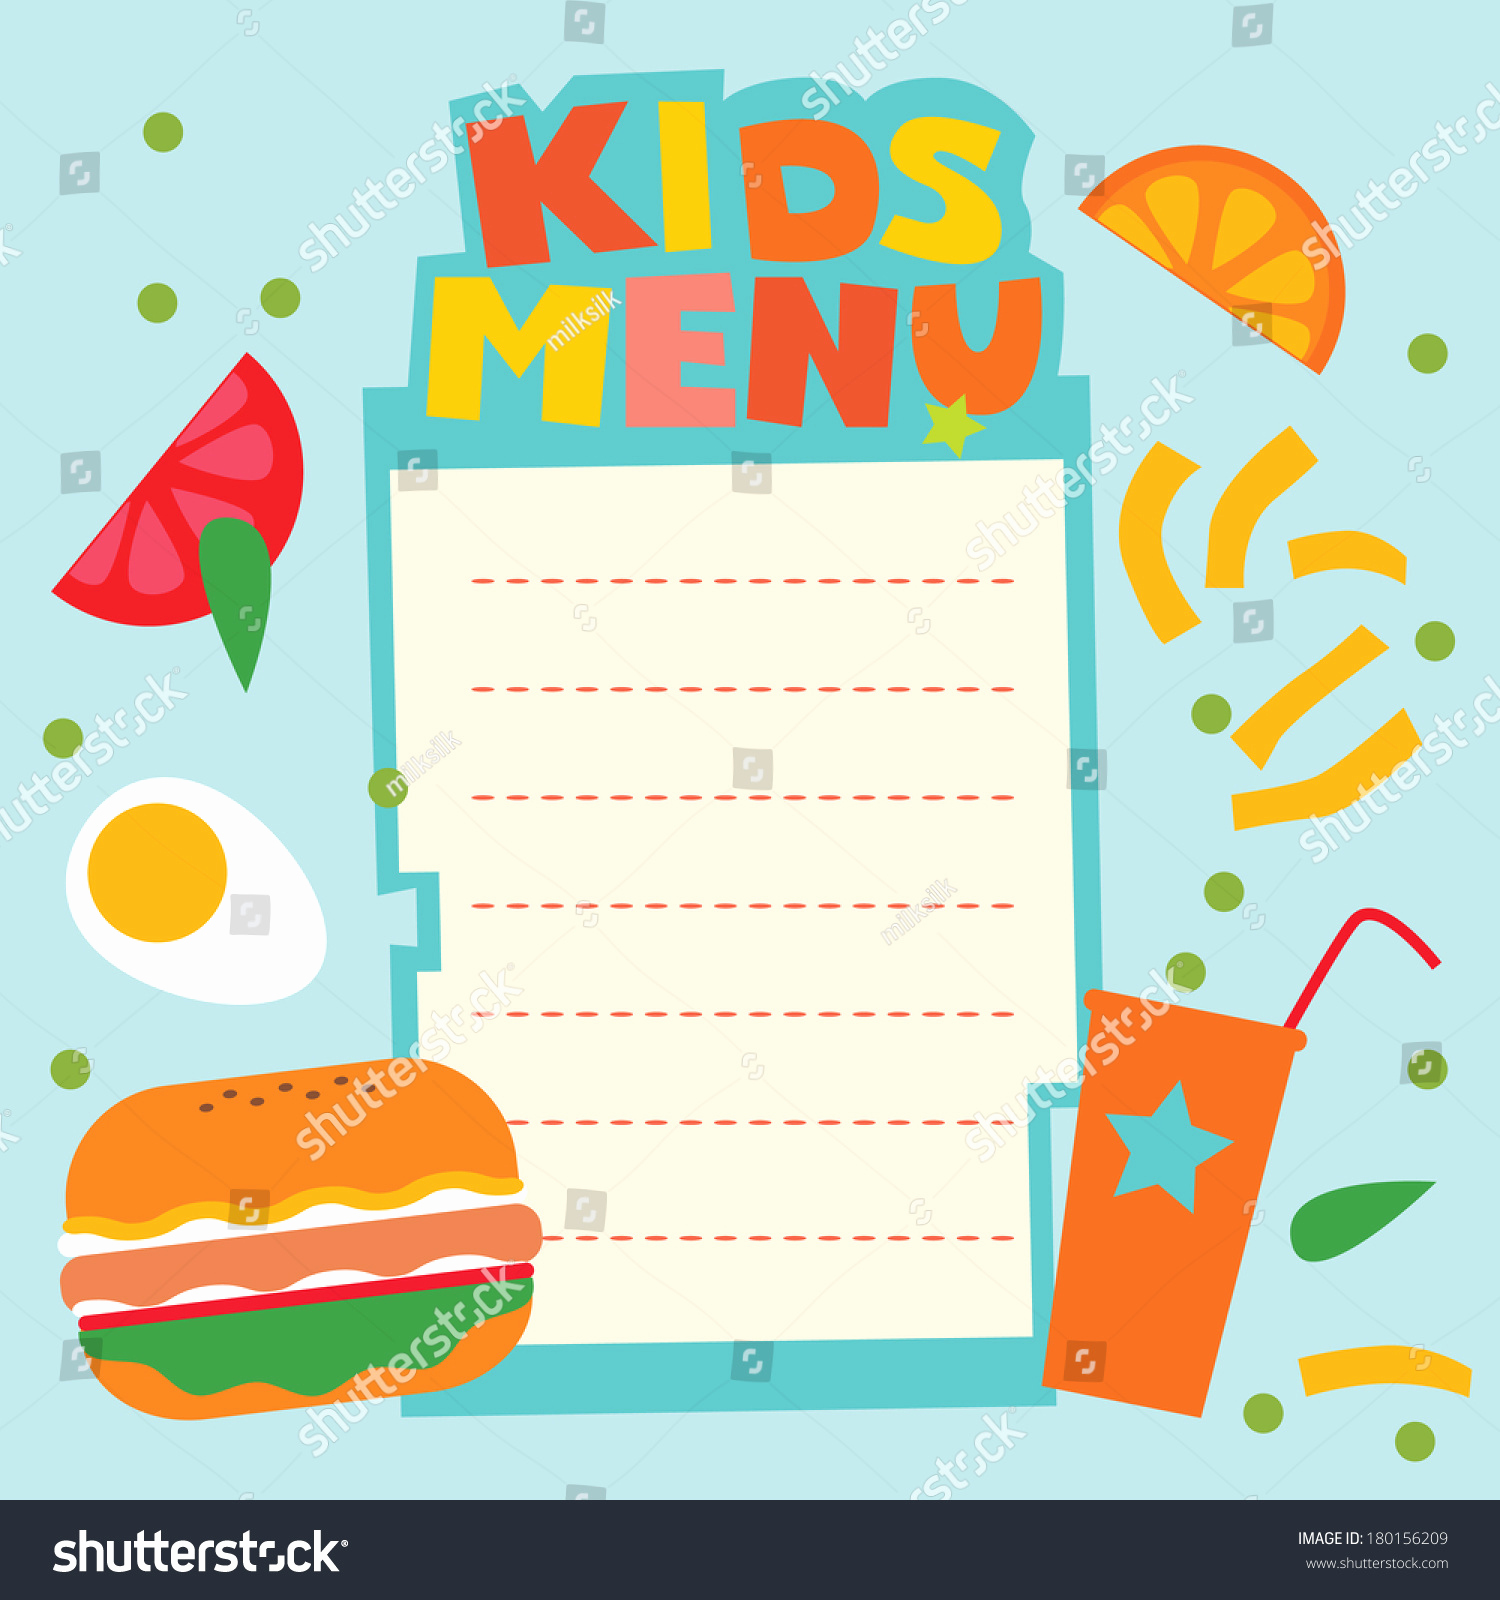 Free Kid Menu Template Fresh Kids Menu Template Stock Vector Shutterstock